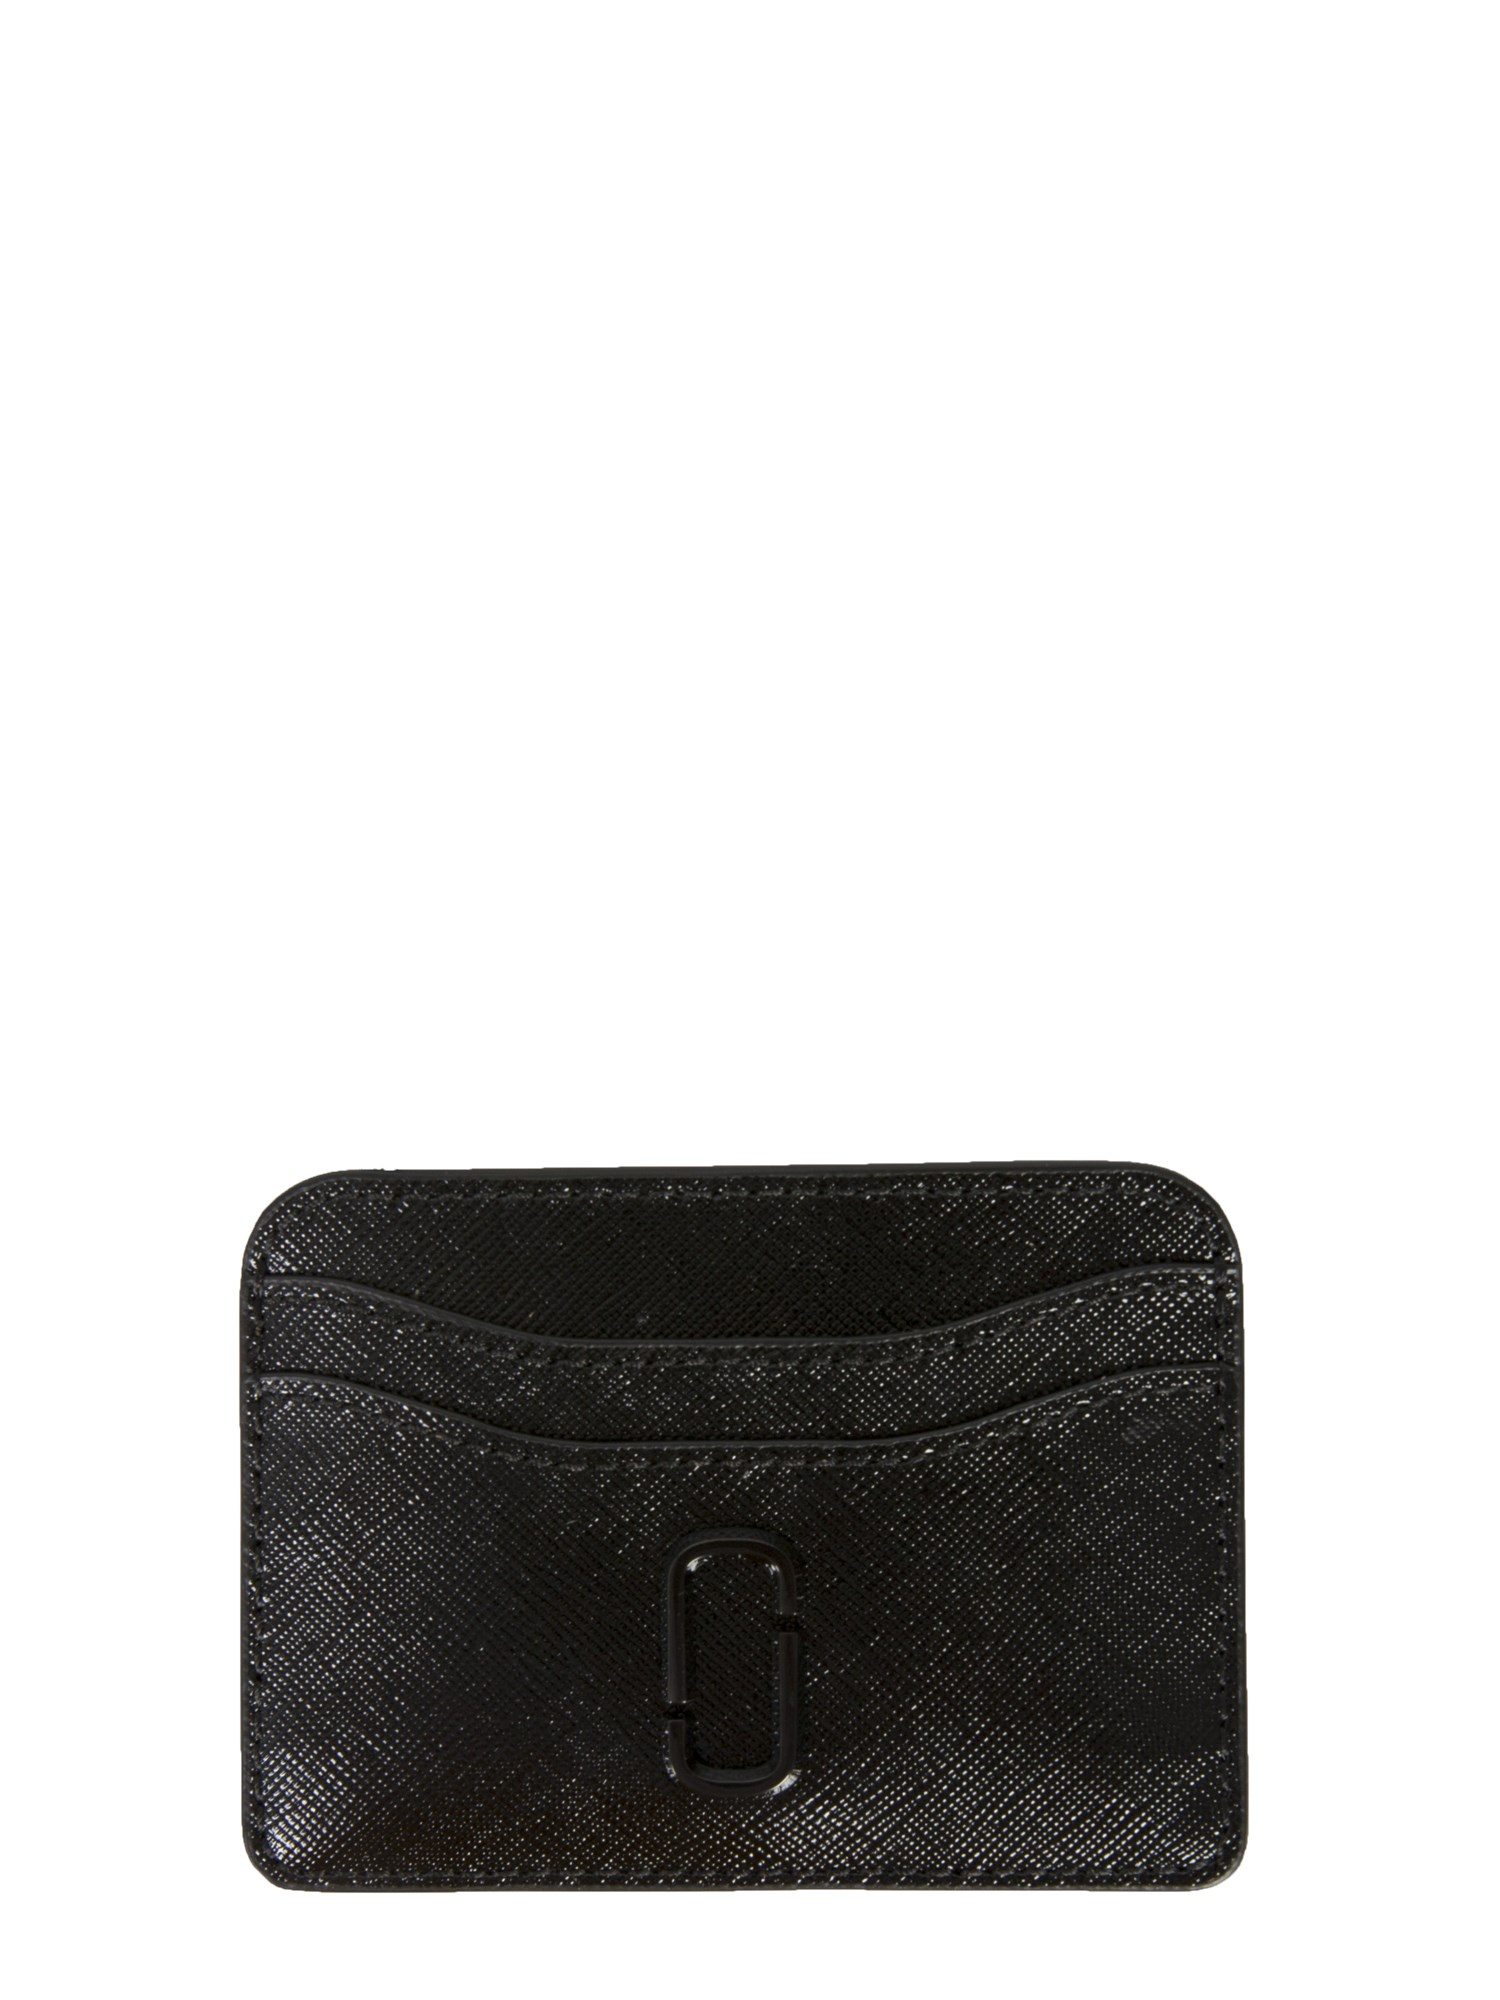 "Marc Jacobs Leathers ""SNAPSHOT DTM"" CARD HOLDER"